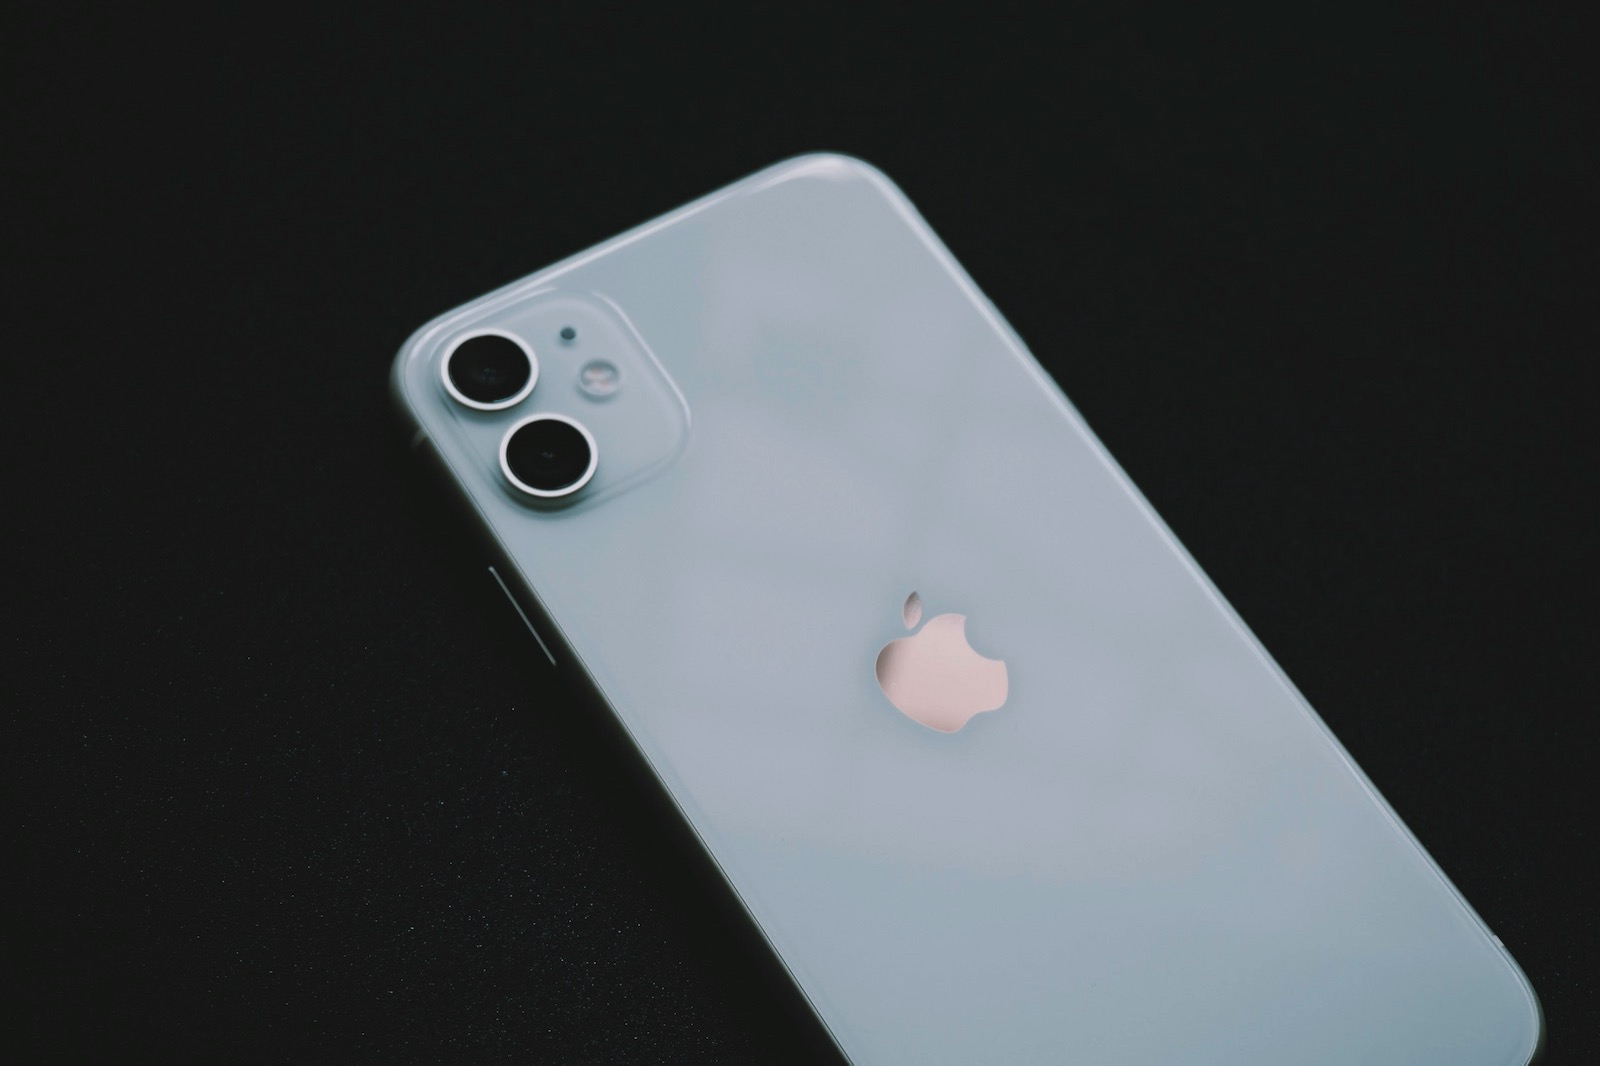 Mark chan BD3cWCkVTs unsplash iphone11